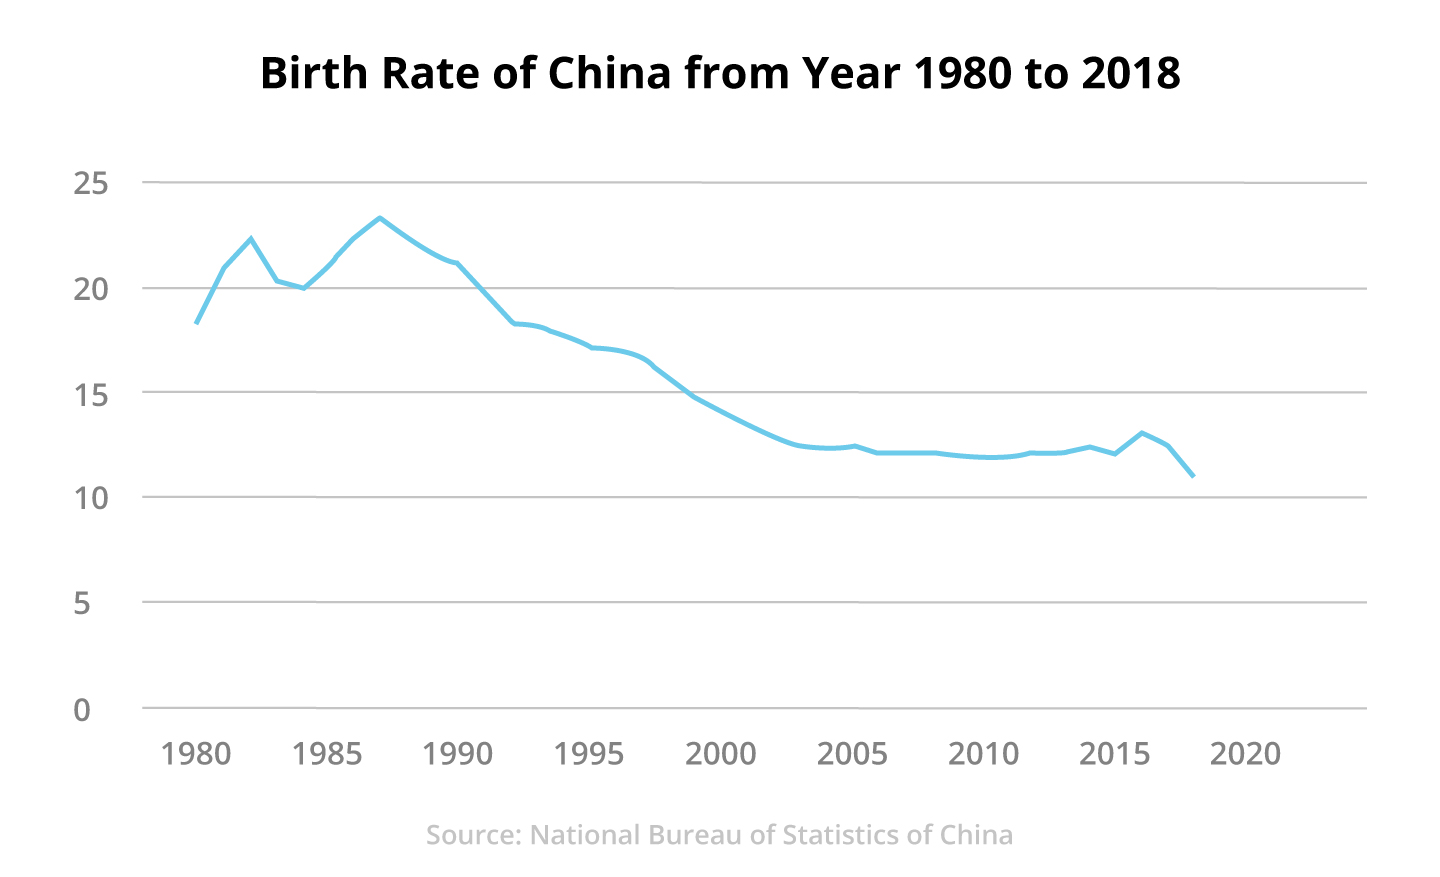 Figure 2: Birth Rate of China from Year 1980 to 2018